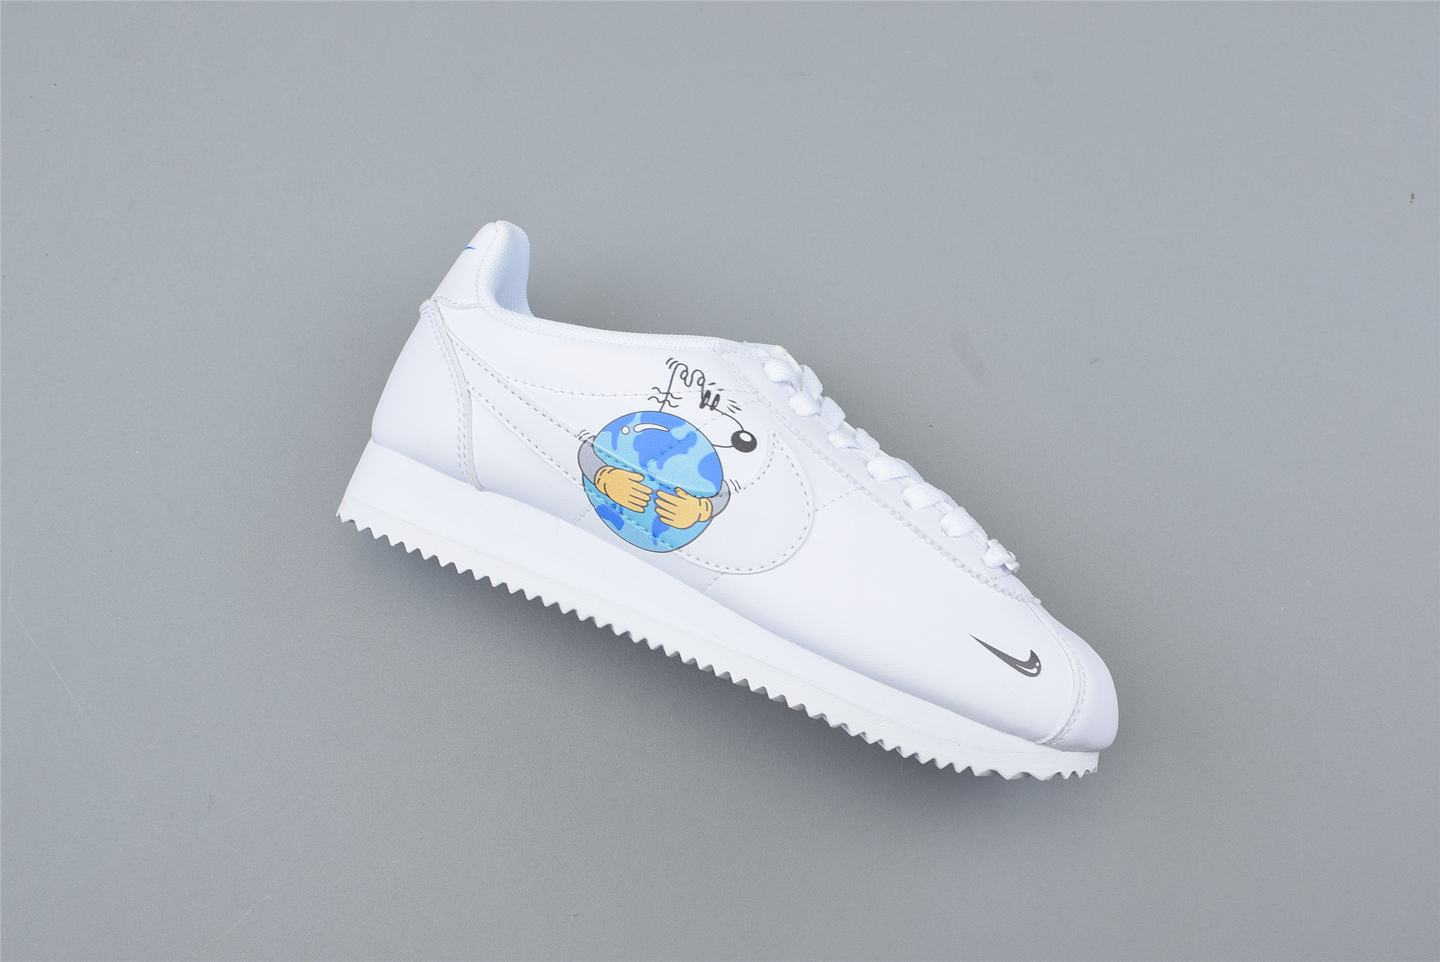 Nike Cortez Flyleather Steve Harrington Earth Day 2019 1